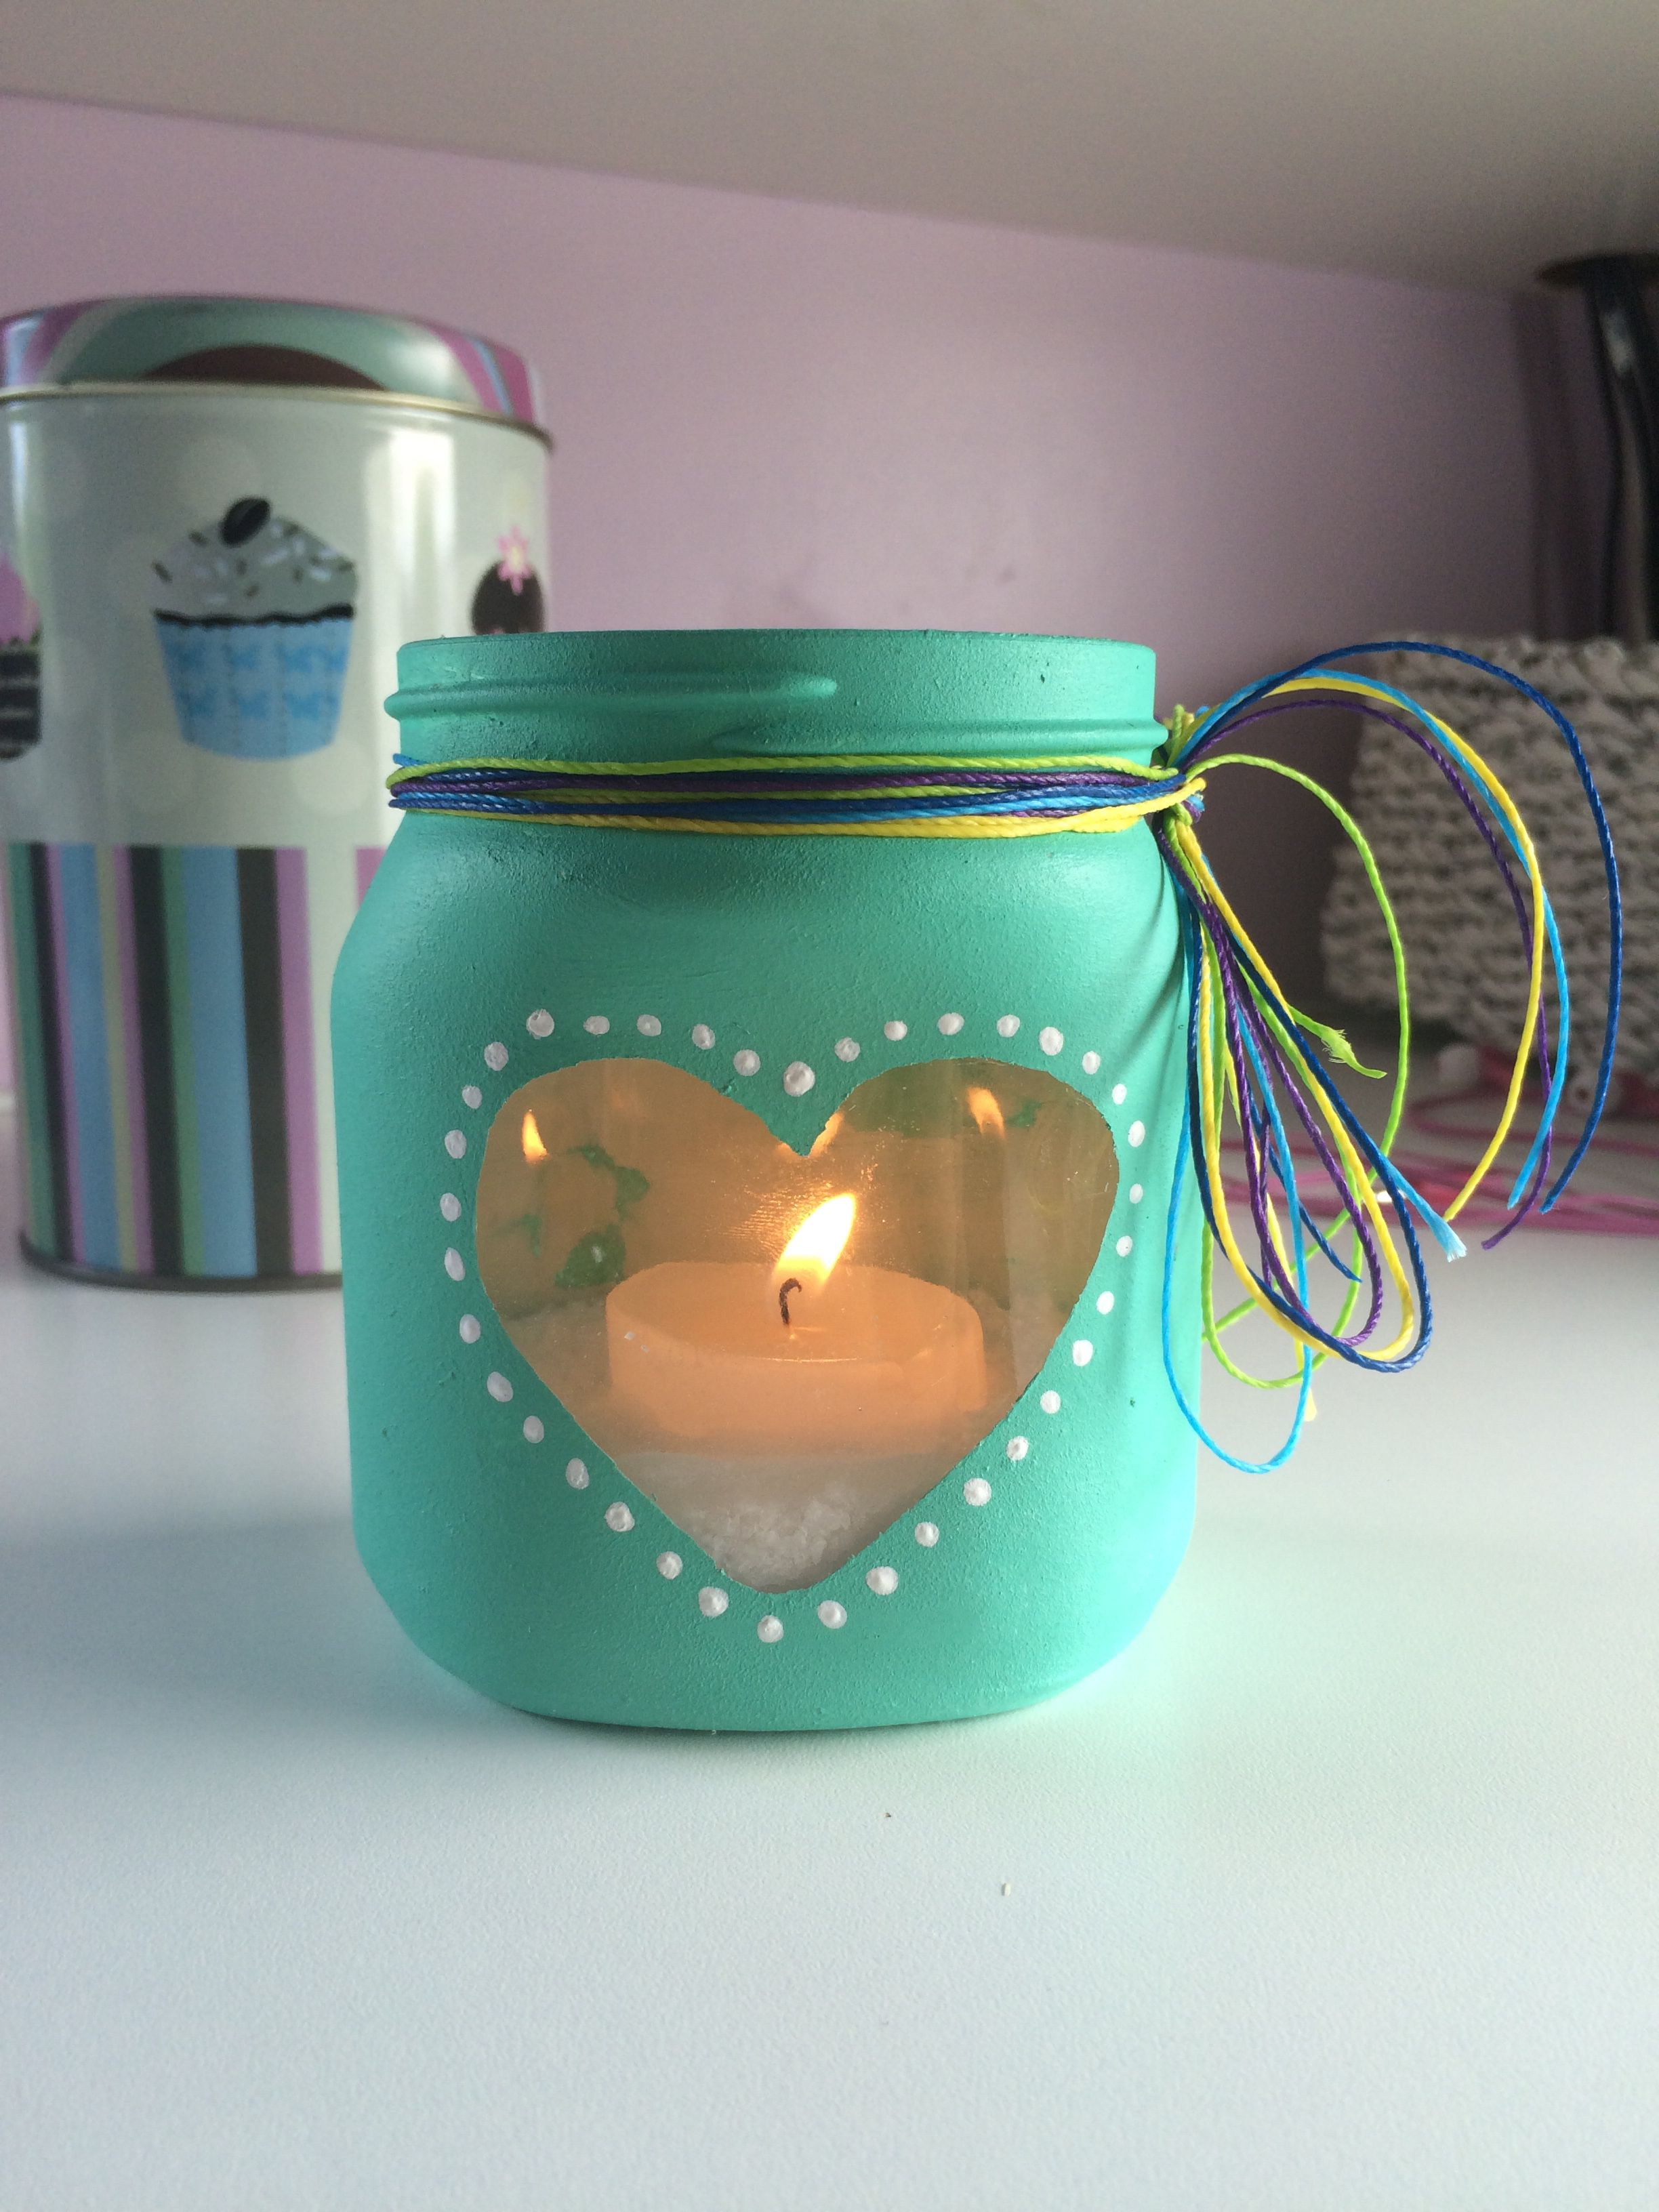 nutella jar transformed diy easy candle basteln pinterest nutella gl ser nutella glas. Black Bedroom Furniture Sets. Home Design Ideas